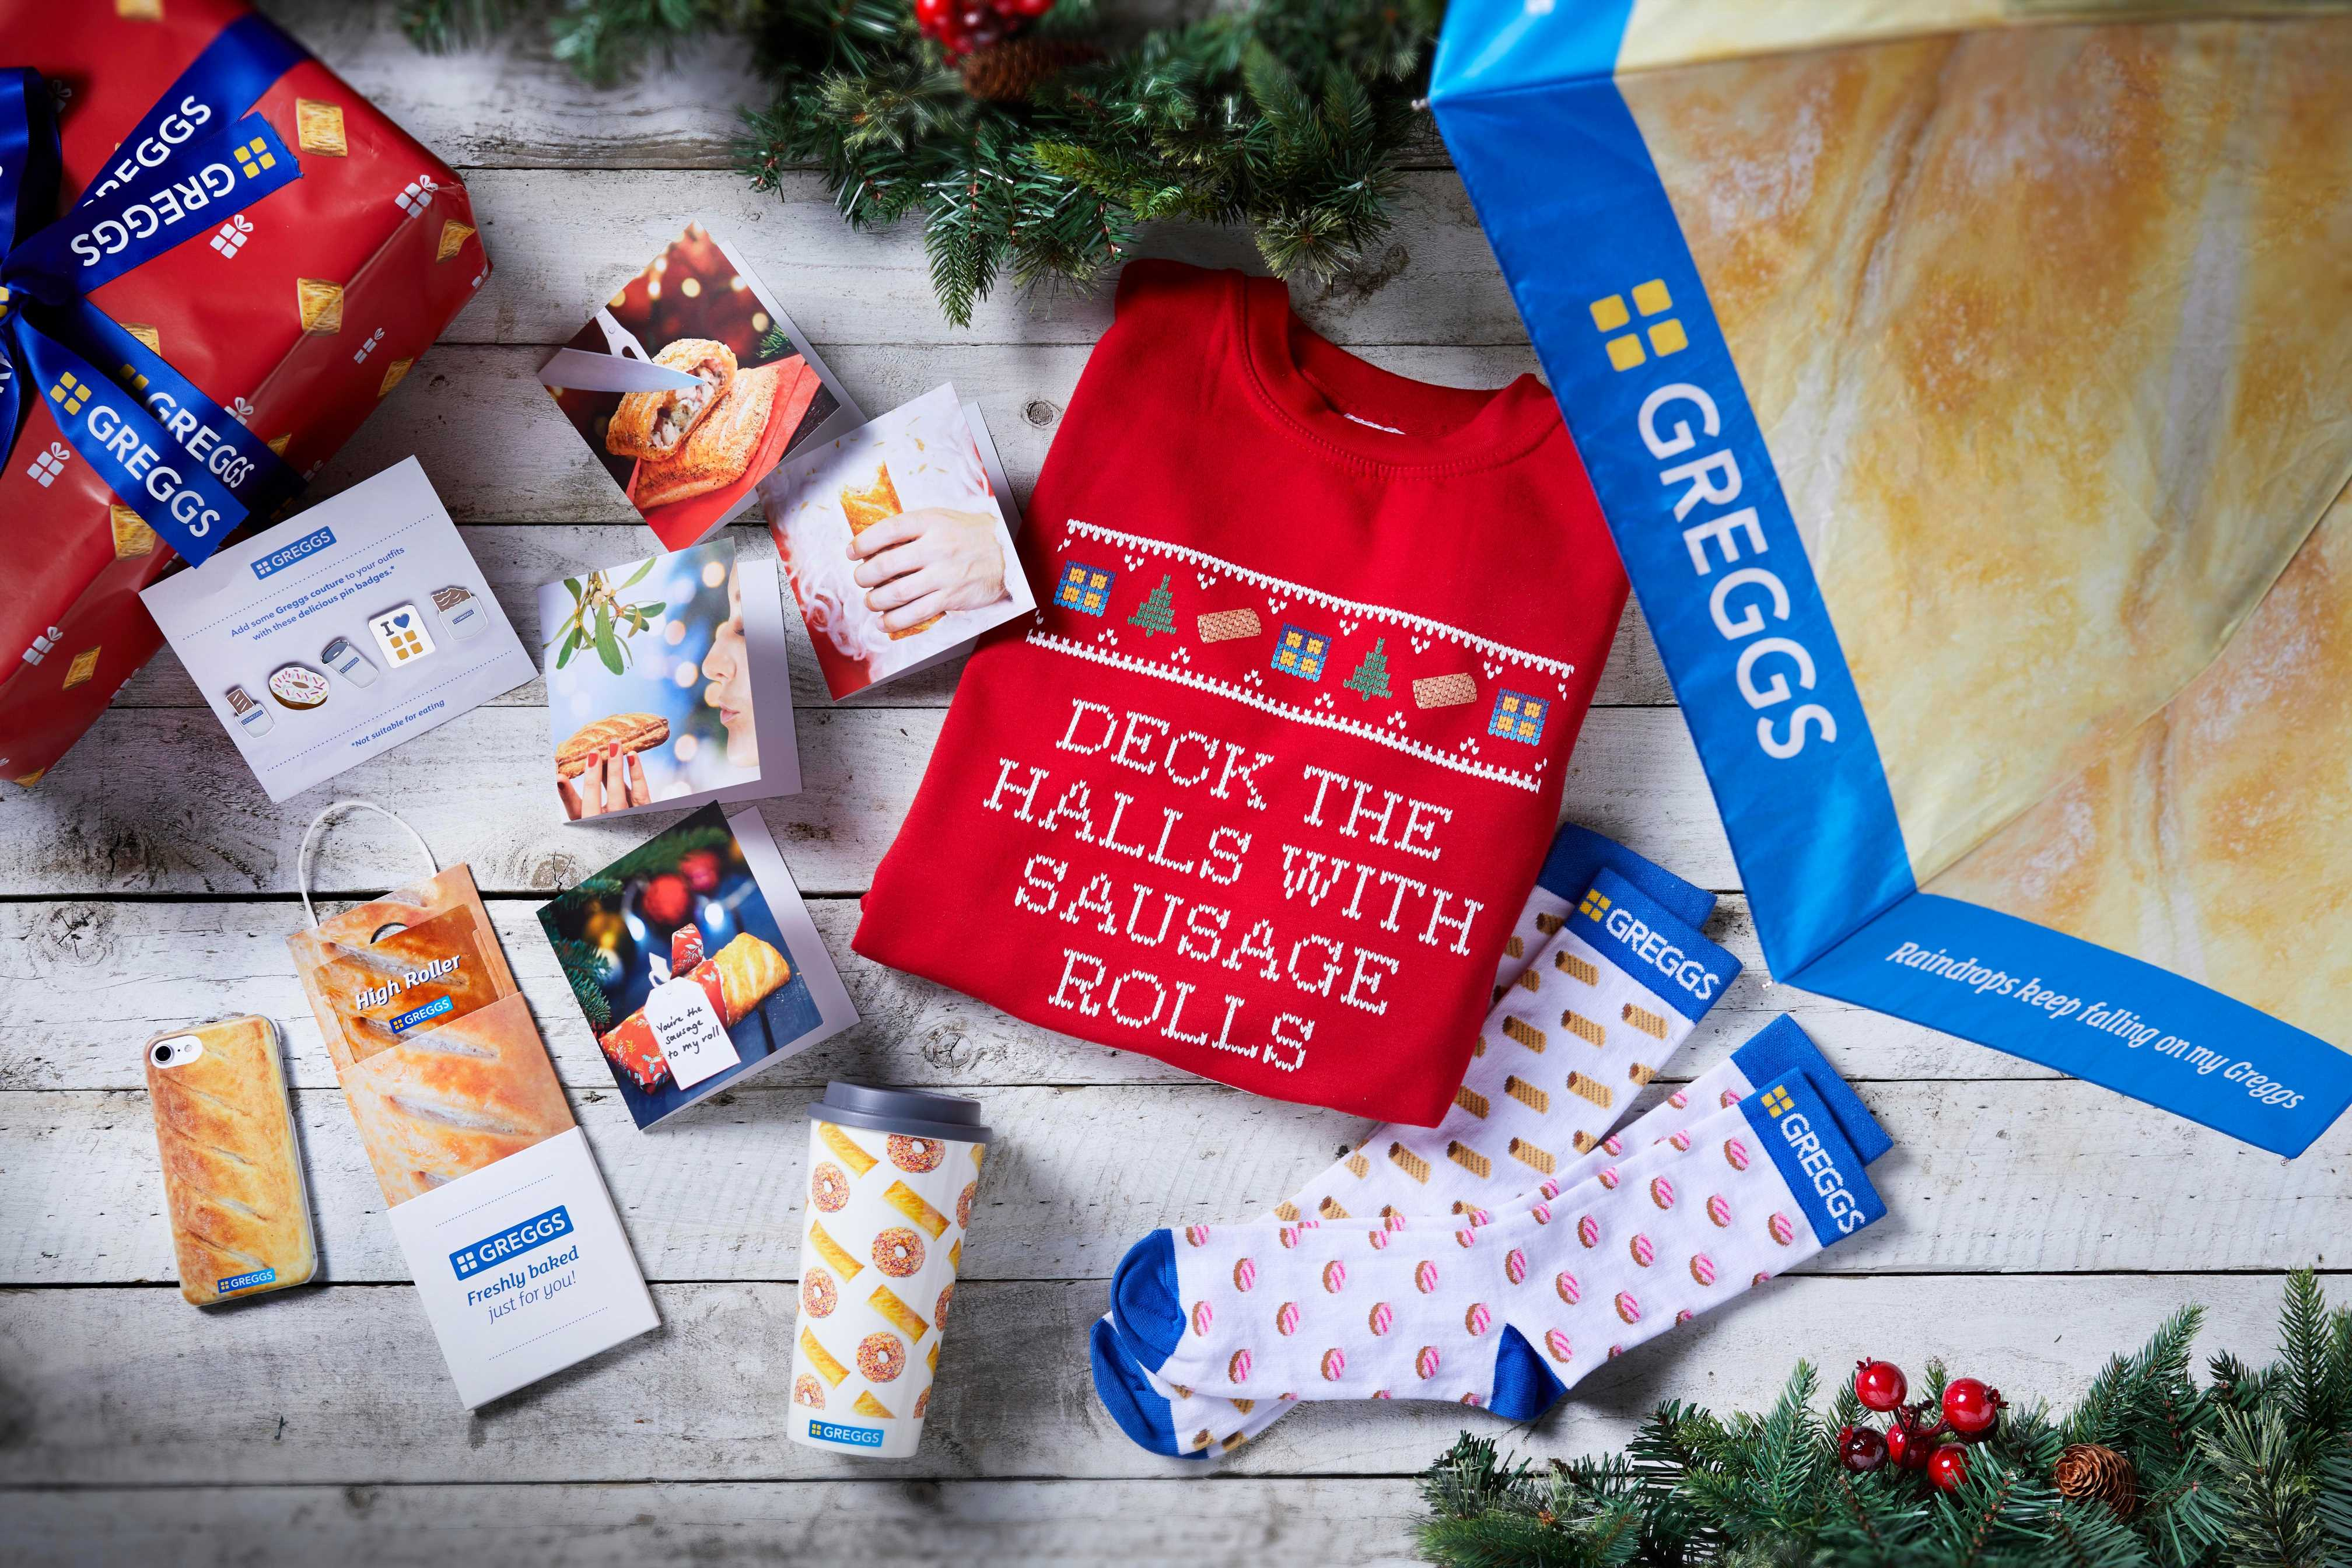 Greggs is selling stocking fillers including a SAUSAGE ROLL phone cover and Christmas jumper